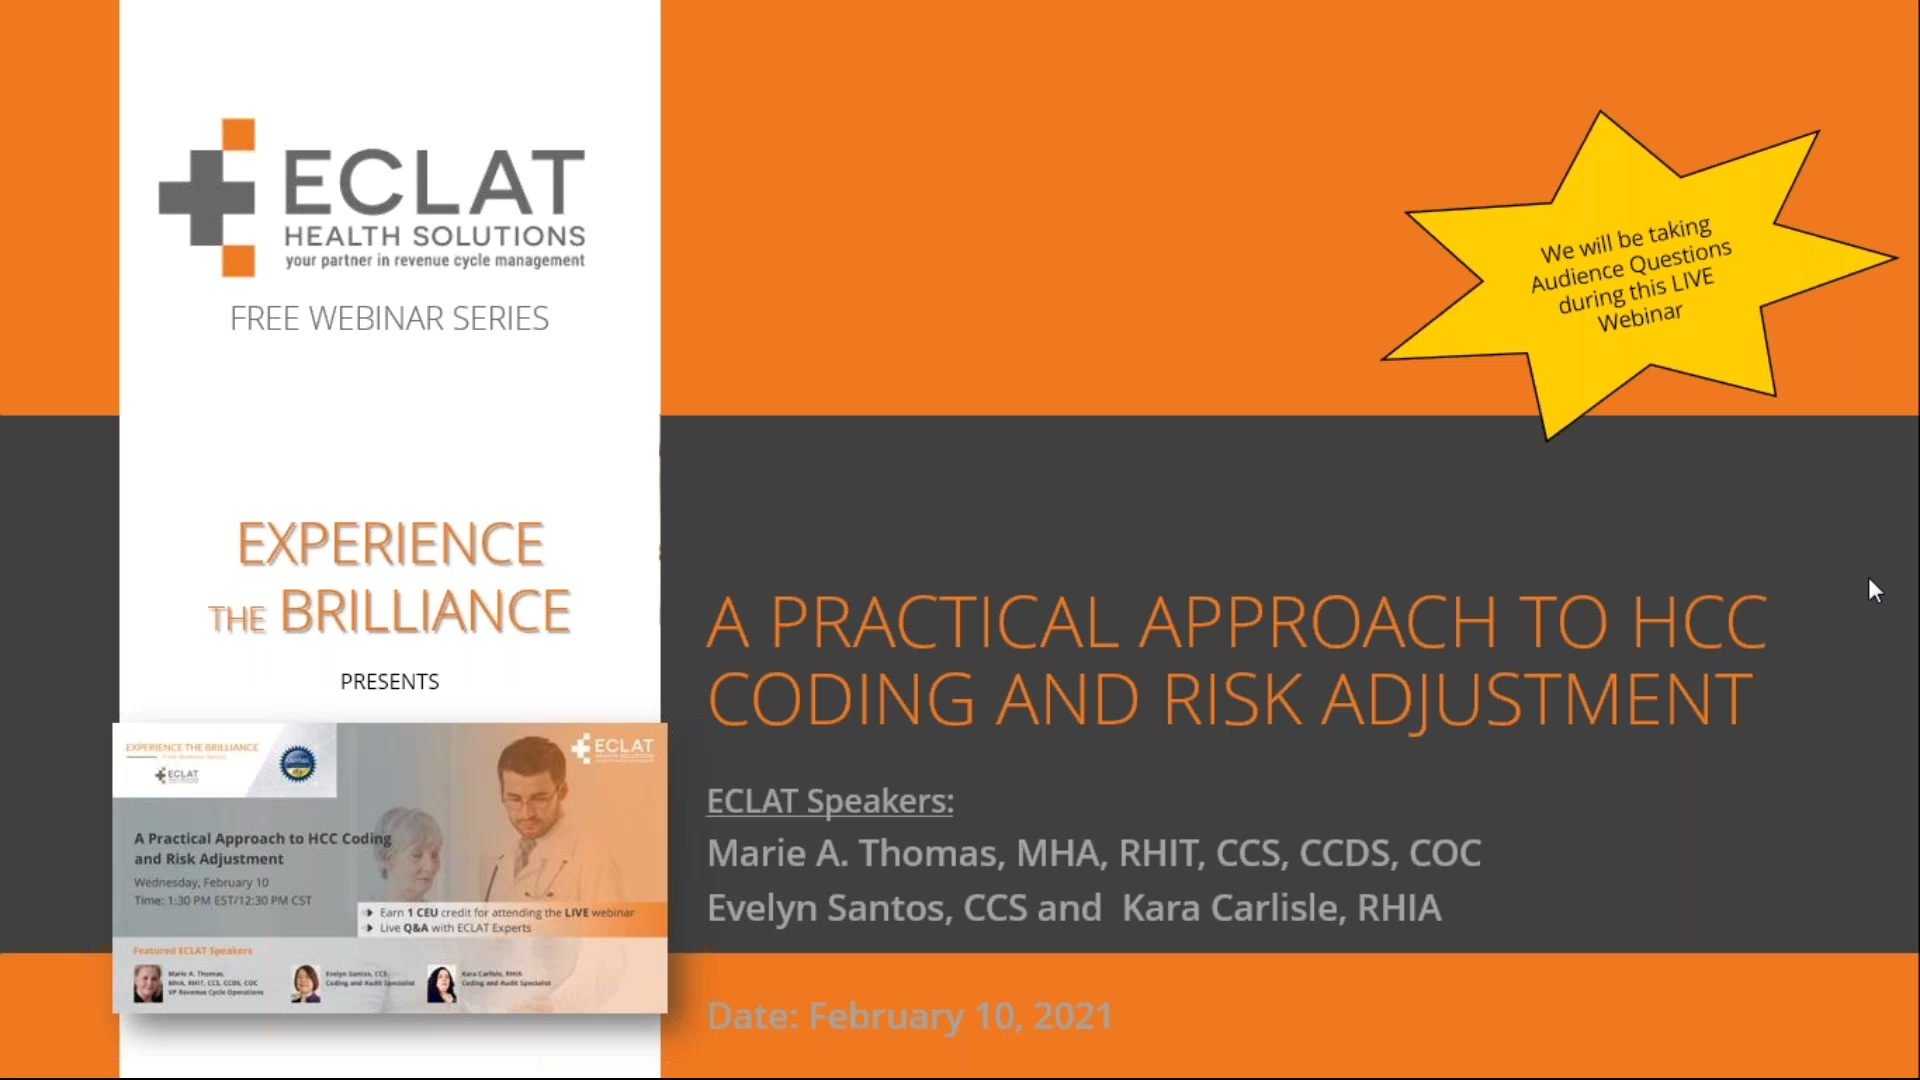 A Practical Approach to HCC Coding and Risk Adjustment